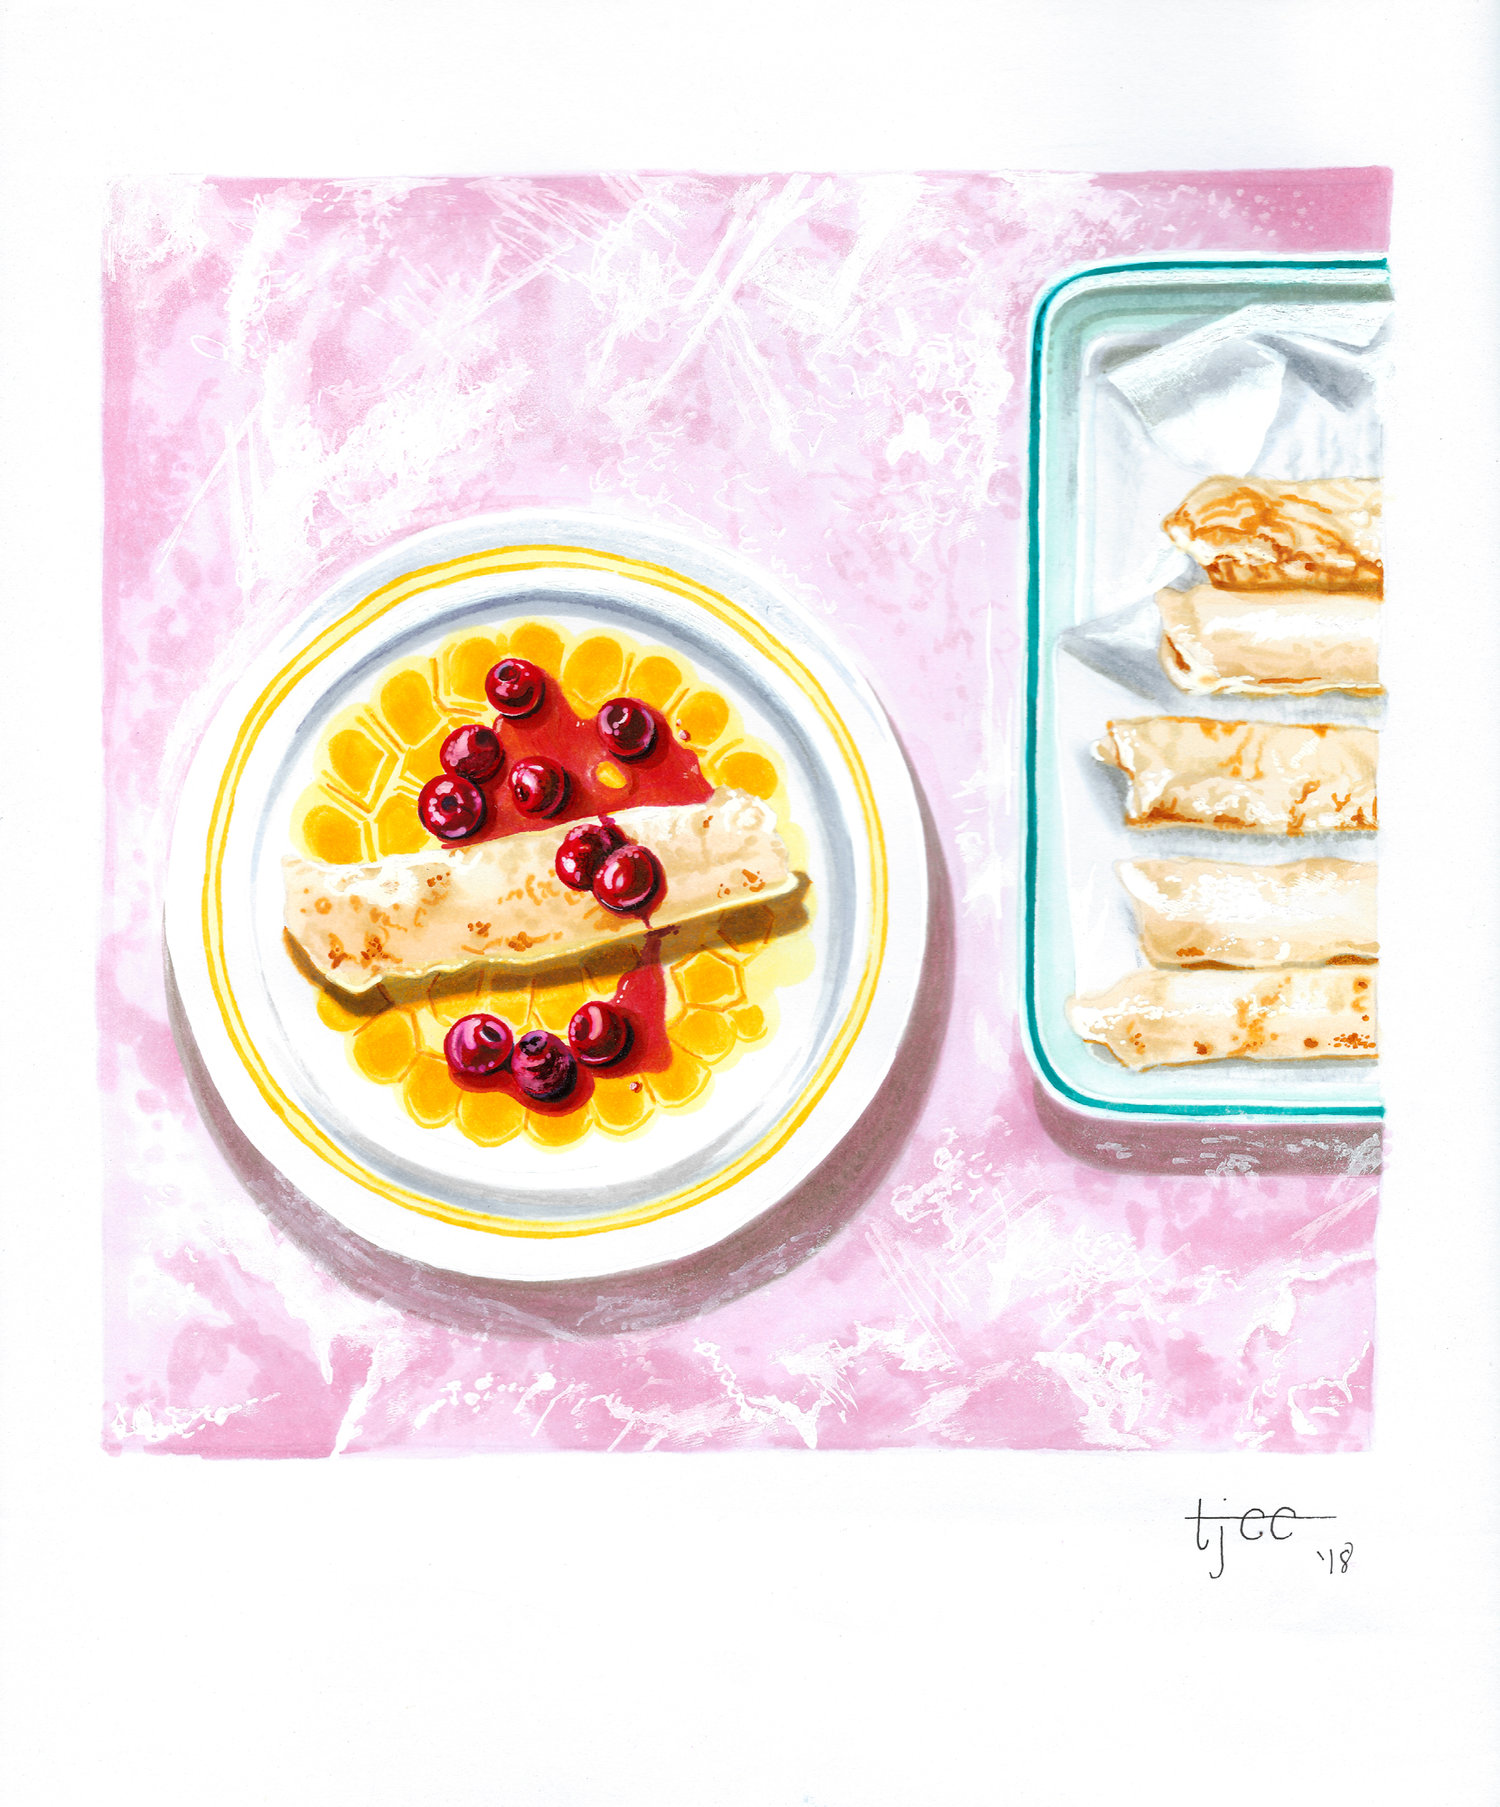 The World In A Pocket's Best of 2018 - Illustration of Cheesecake Blintz by Tabitha Eller